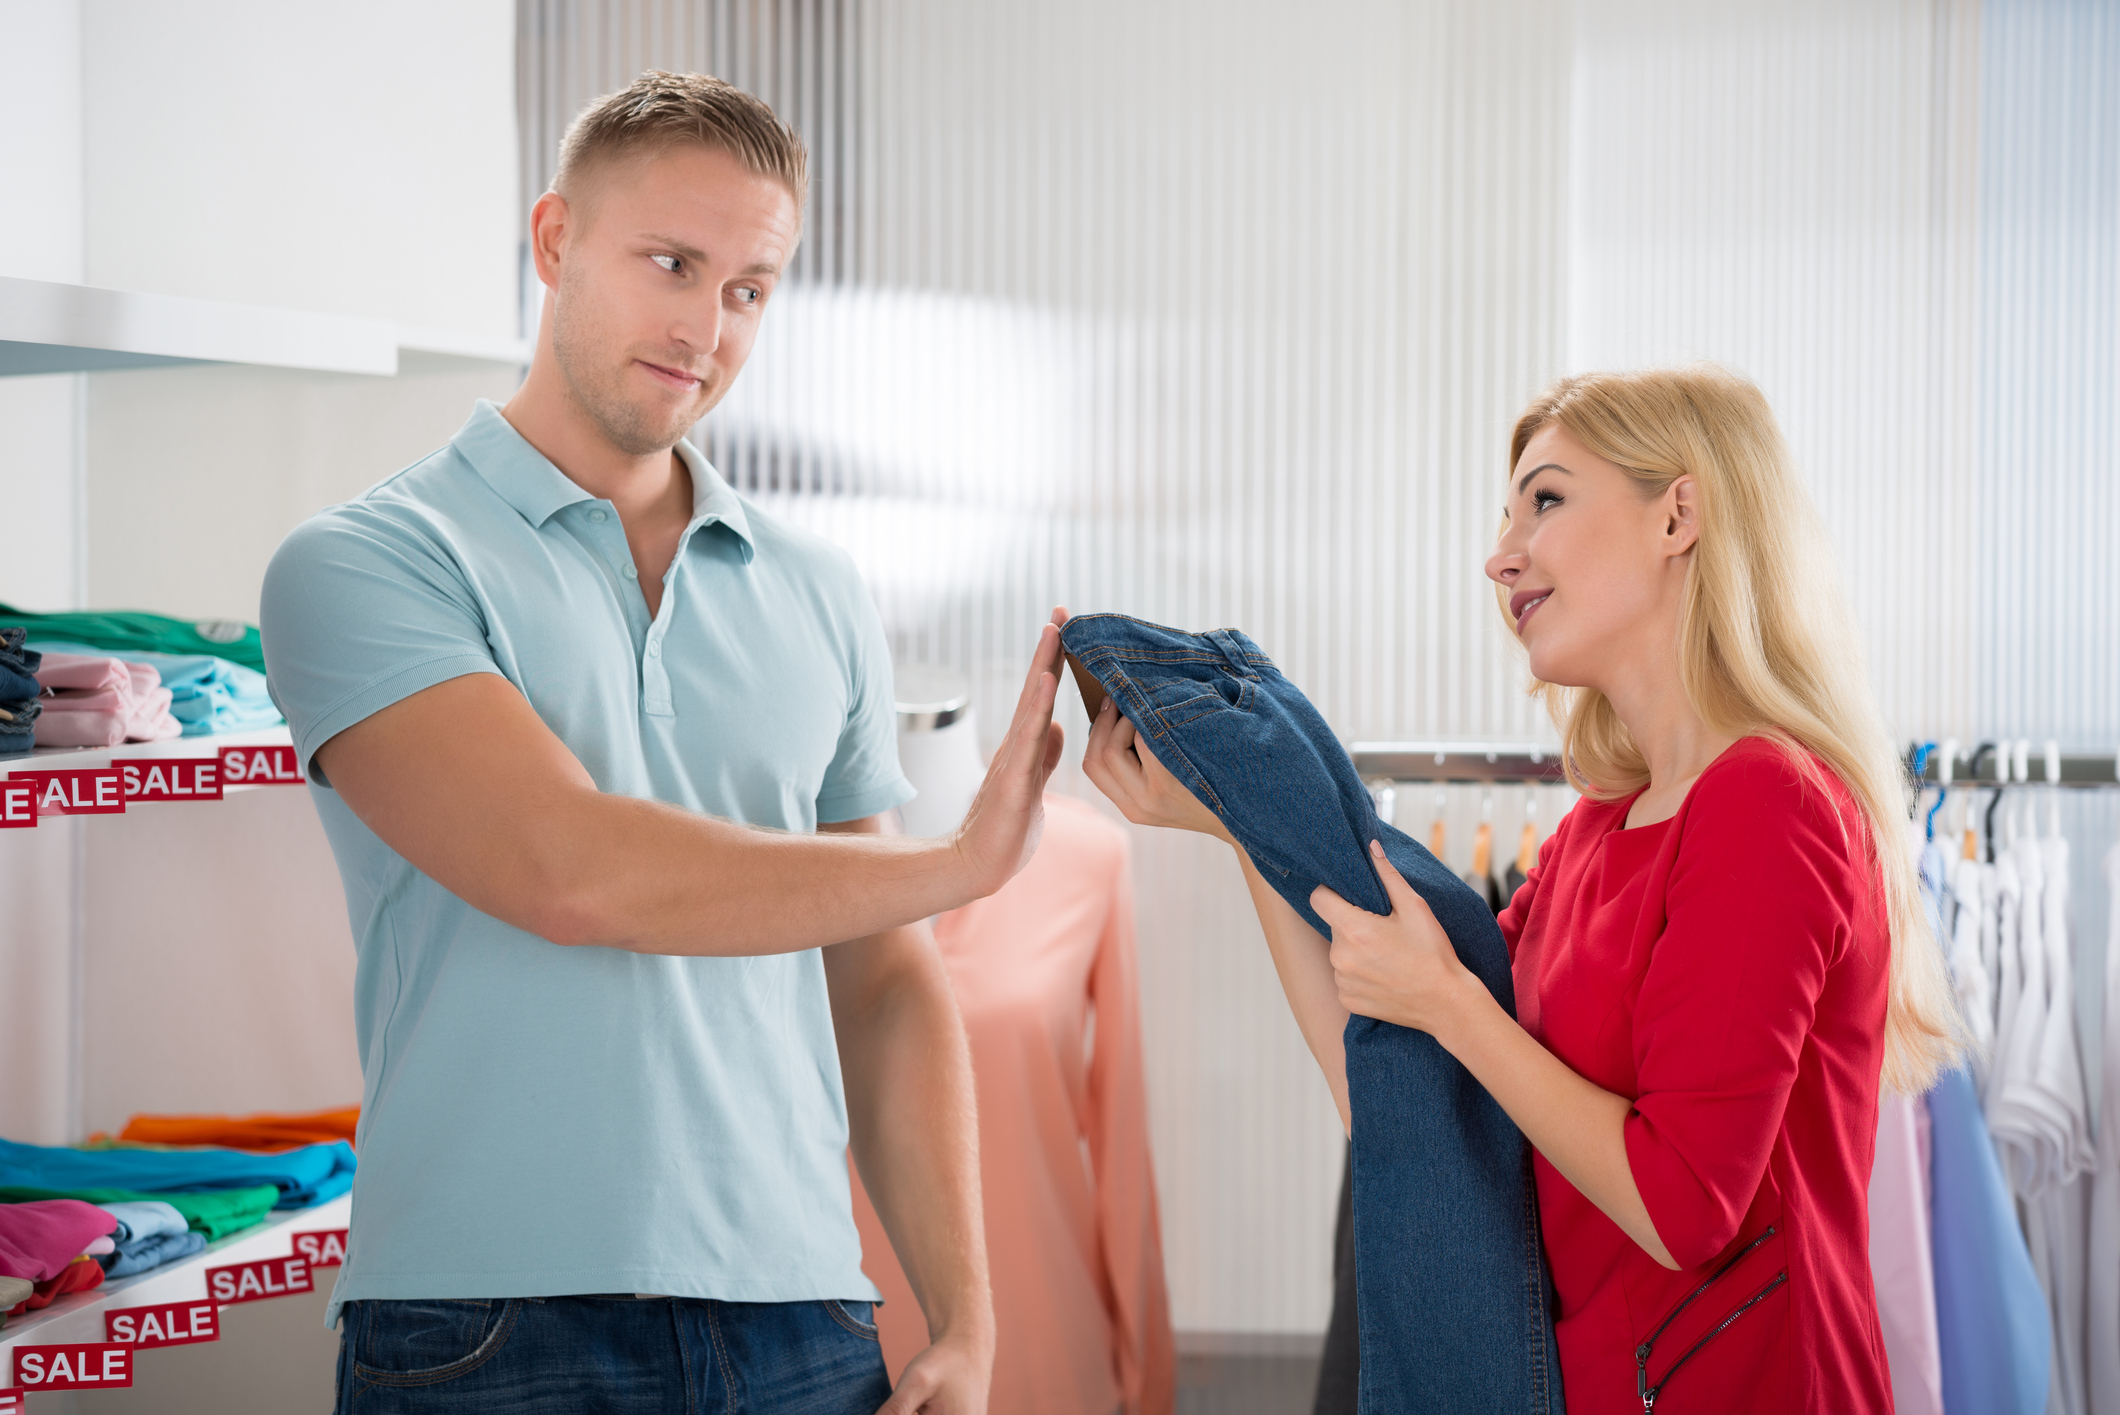 Man Showing Stop Gesture To Woman Buying Jeans